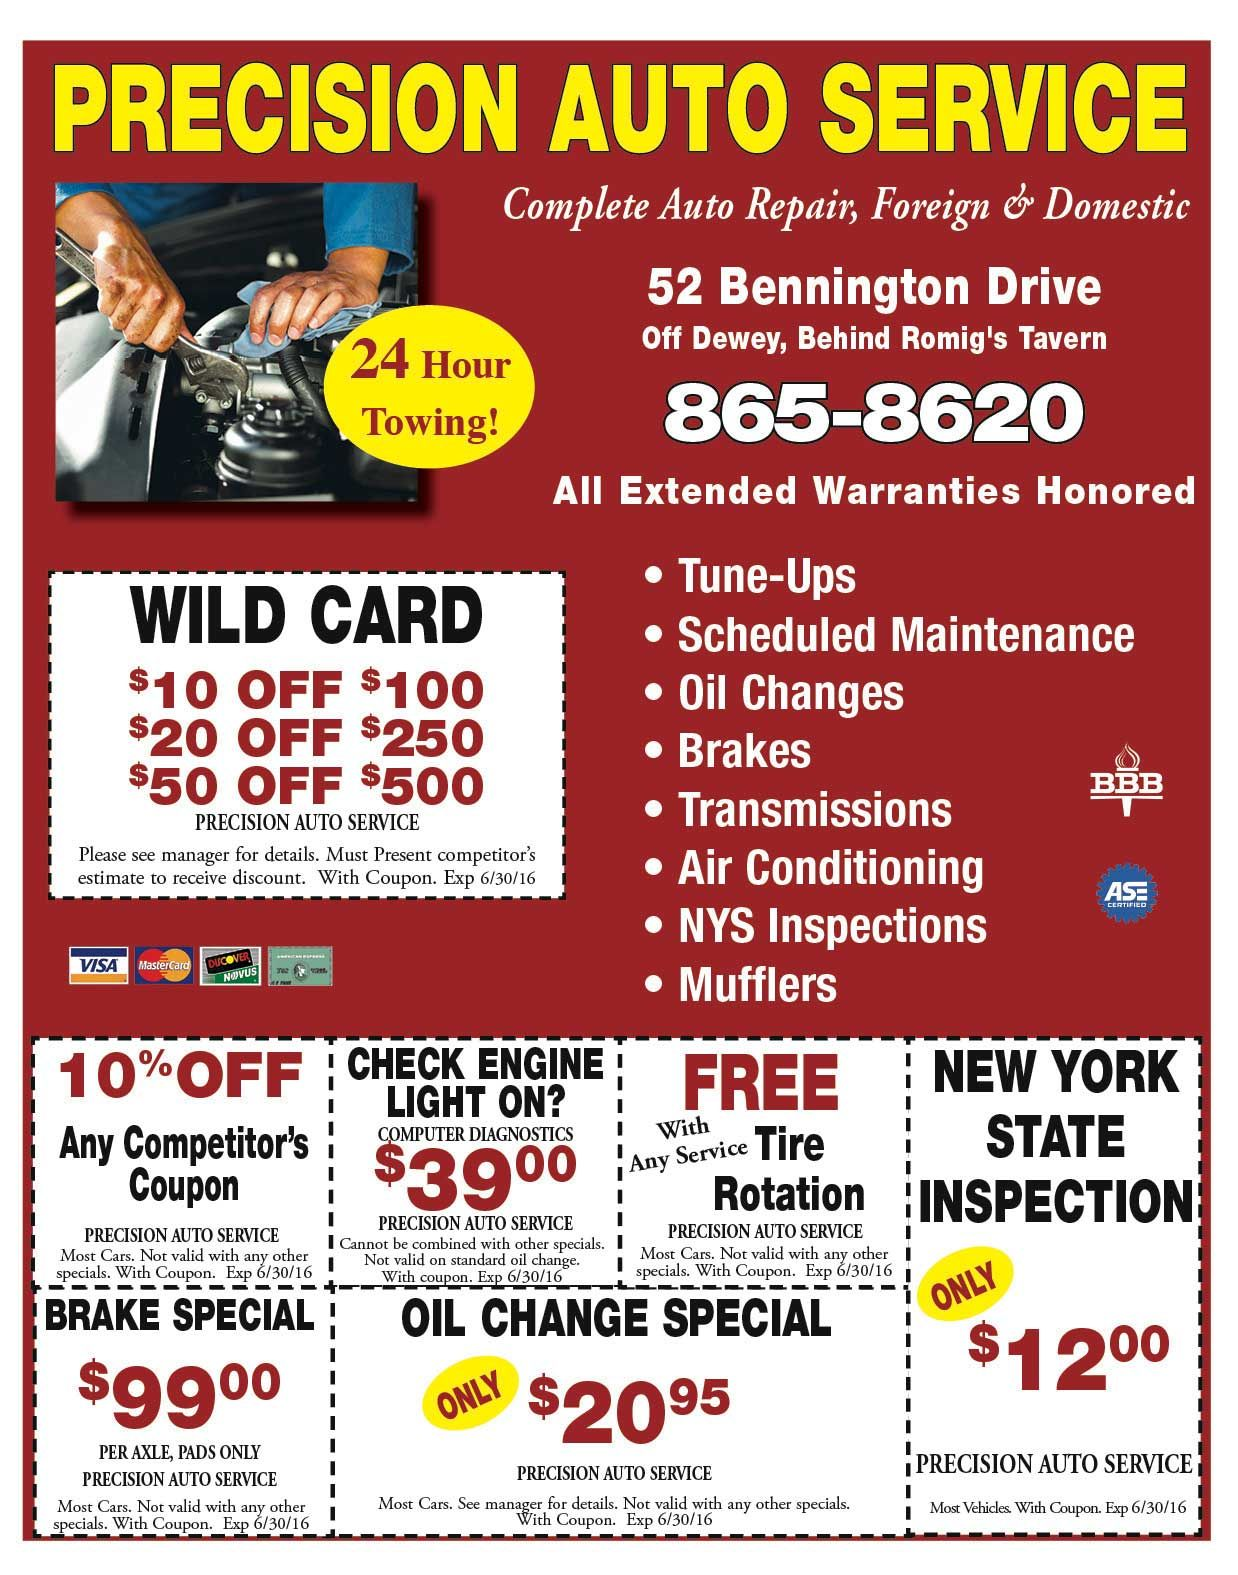 Car service coupons